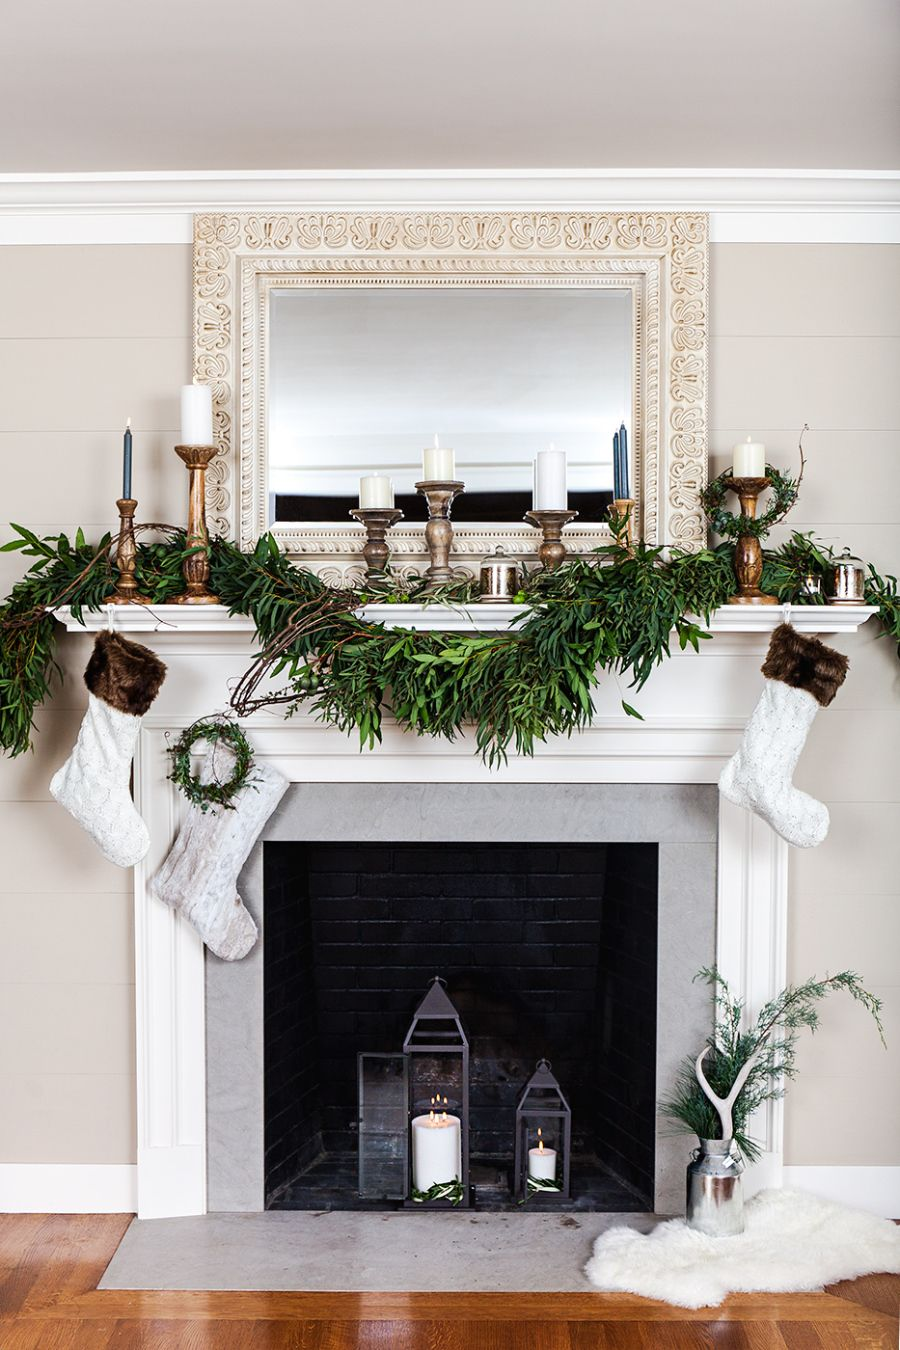 5 Tips for Stress Free Decorating this Holiday